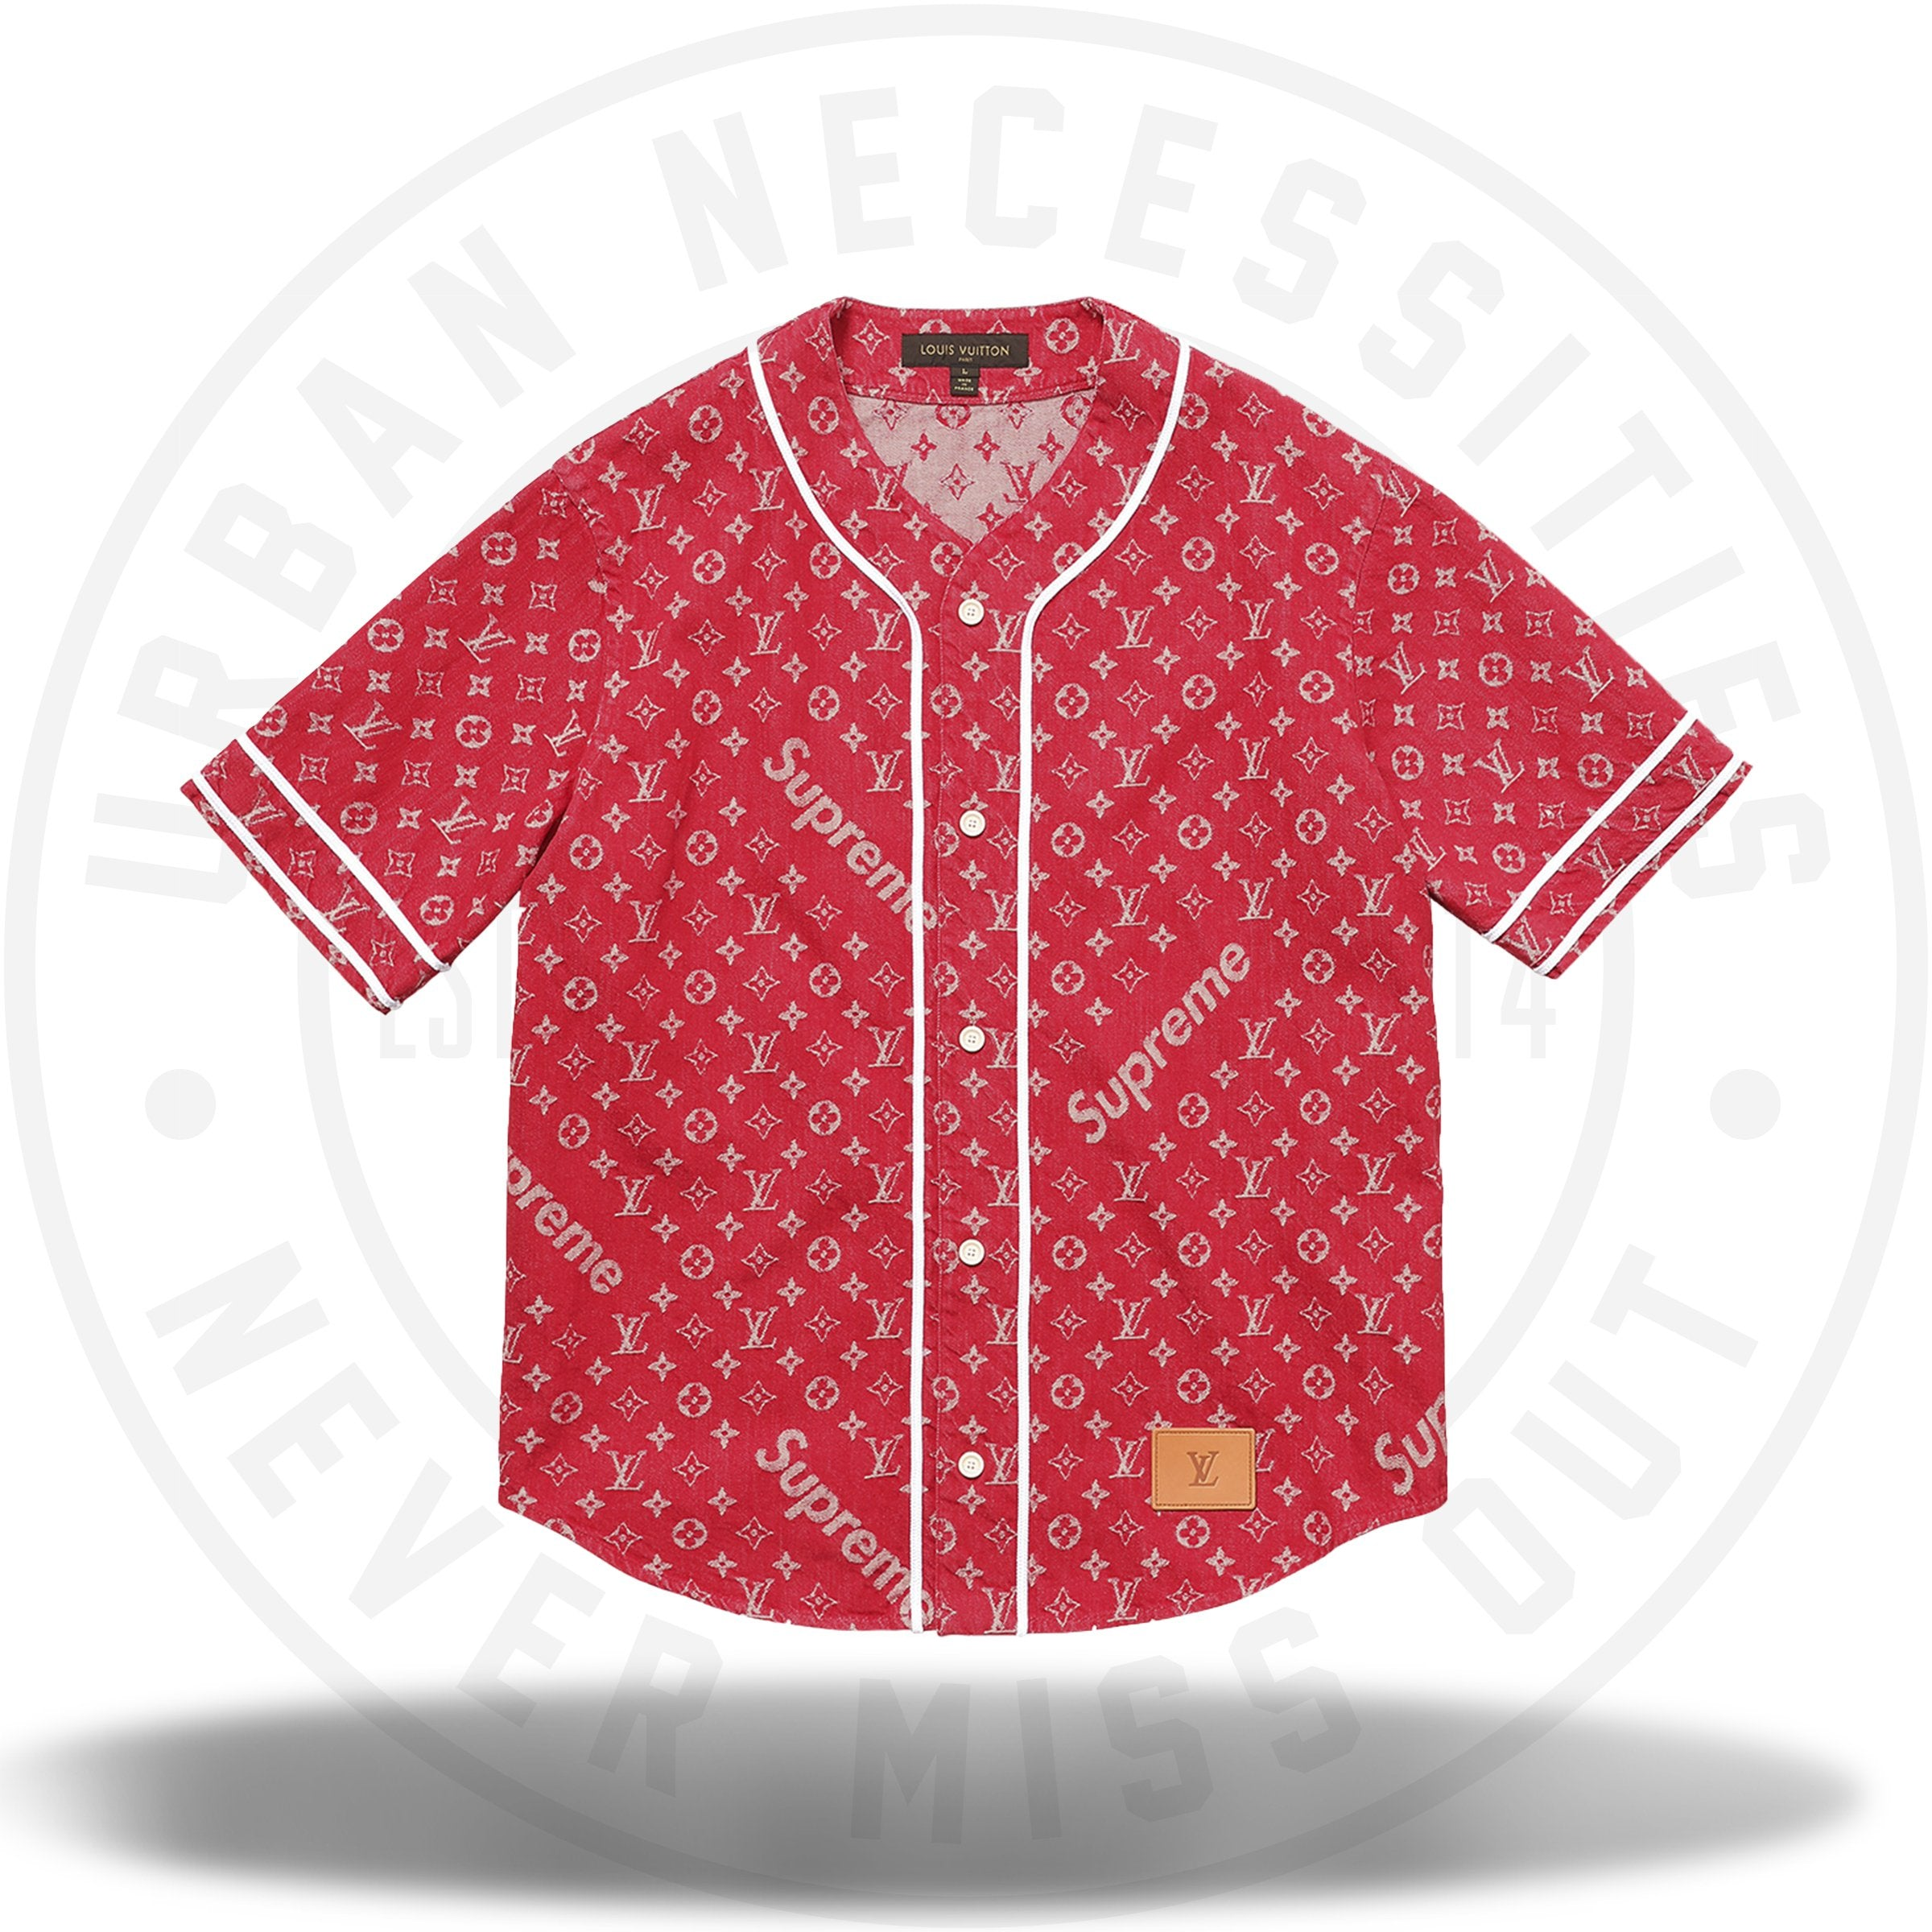 Louis Vuitton Supreme Jacquard Denim Baseball Jersey Red